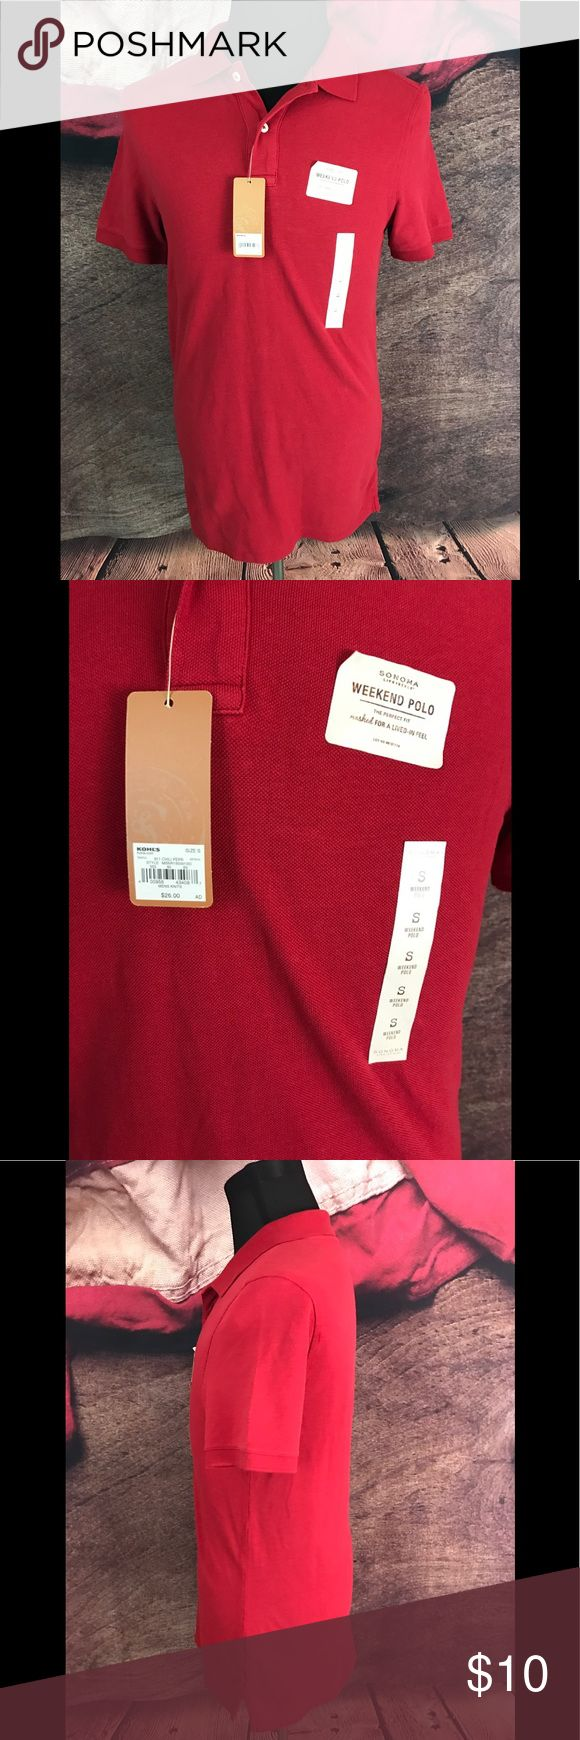 Sonoma Weekend Polo Perfect Fit Red Cotton Polo S Pre-Owned in Sonoma Men's Weekend Polo Perfect Fit Red Cotton Polo Shirt Size Small 15   Size: Small